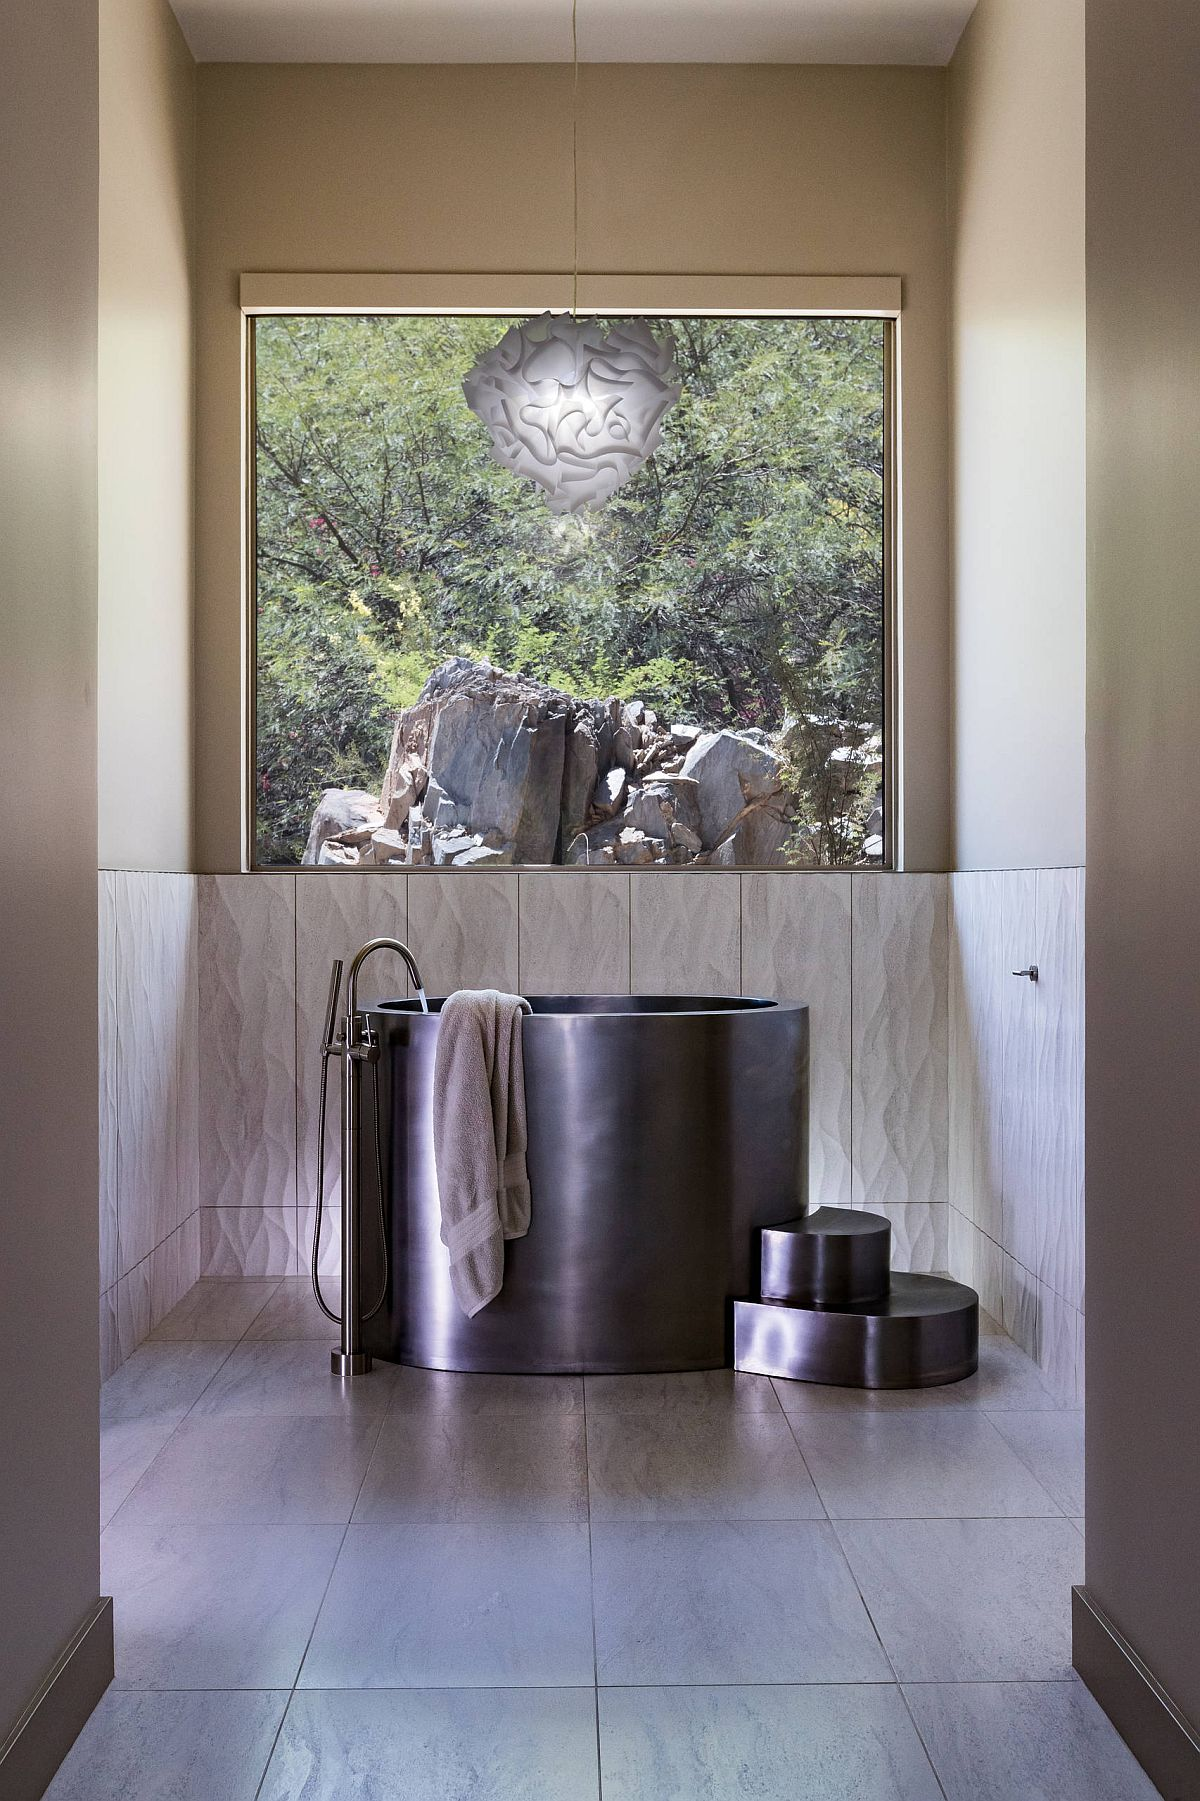 Stainless steel Japanese soaking tub in black is an absolute showstopper!